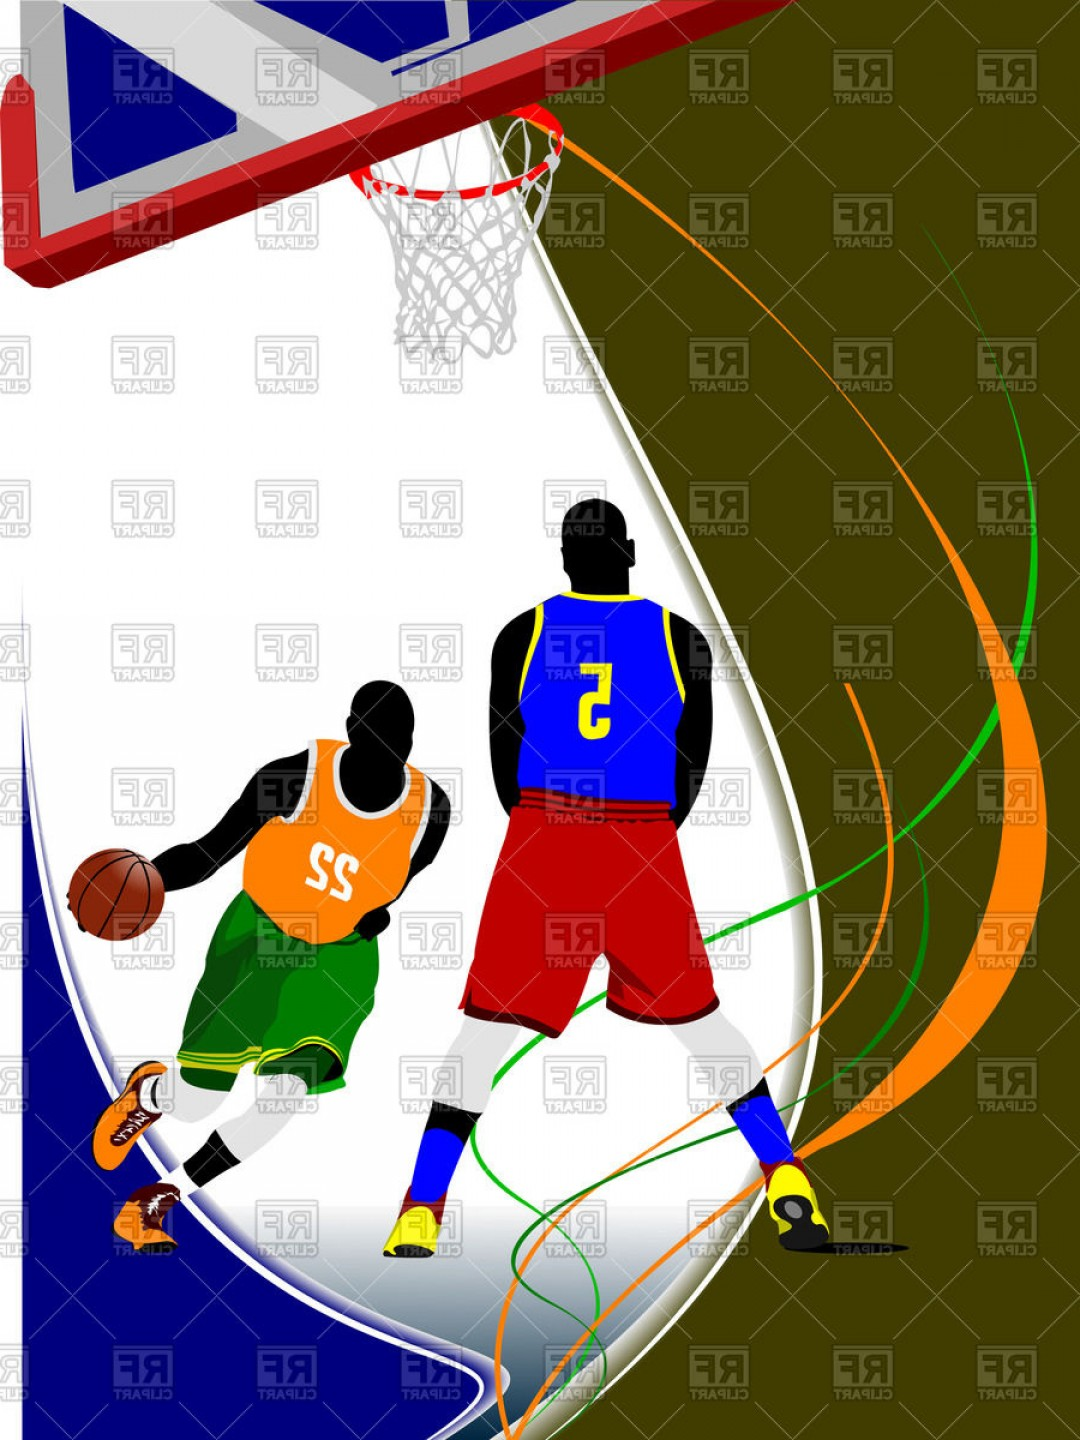 Motion Basketball Vector: Poster Basketball Players In Motion Near Hoop On Blue White And Green Background Vector Clipart